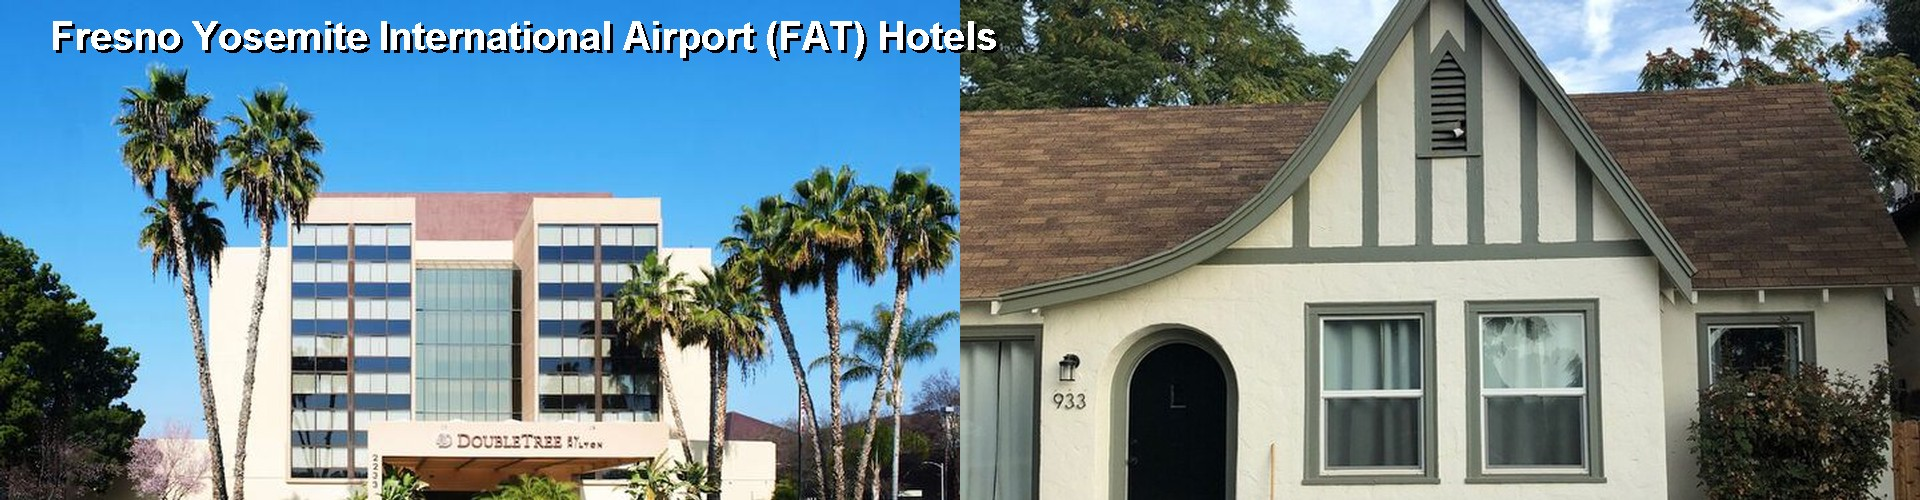 46 Hotels Near Fresno Yosemite International Airport FAT CA